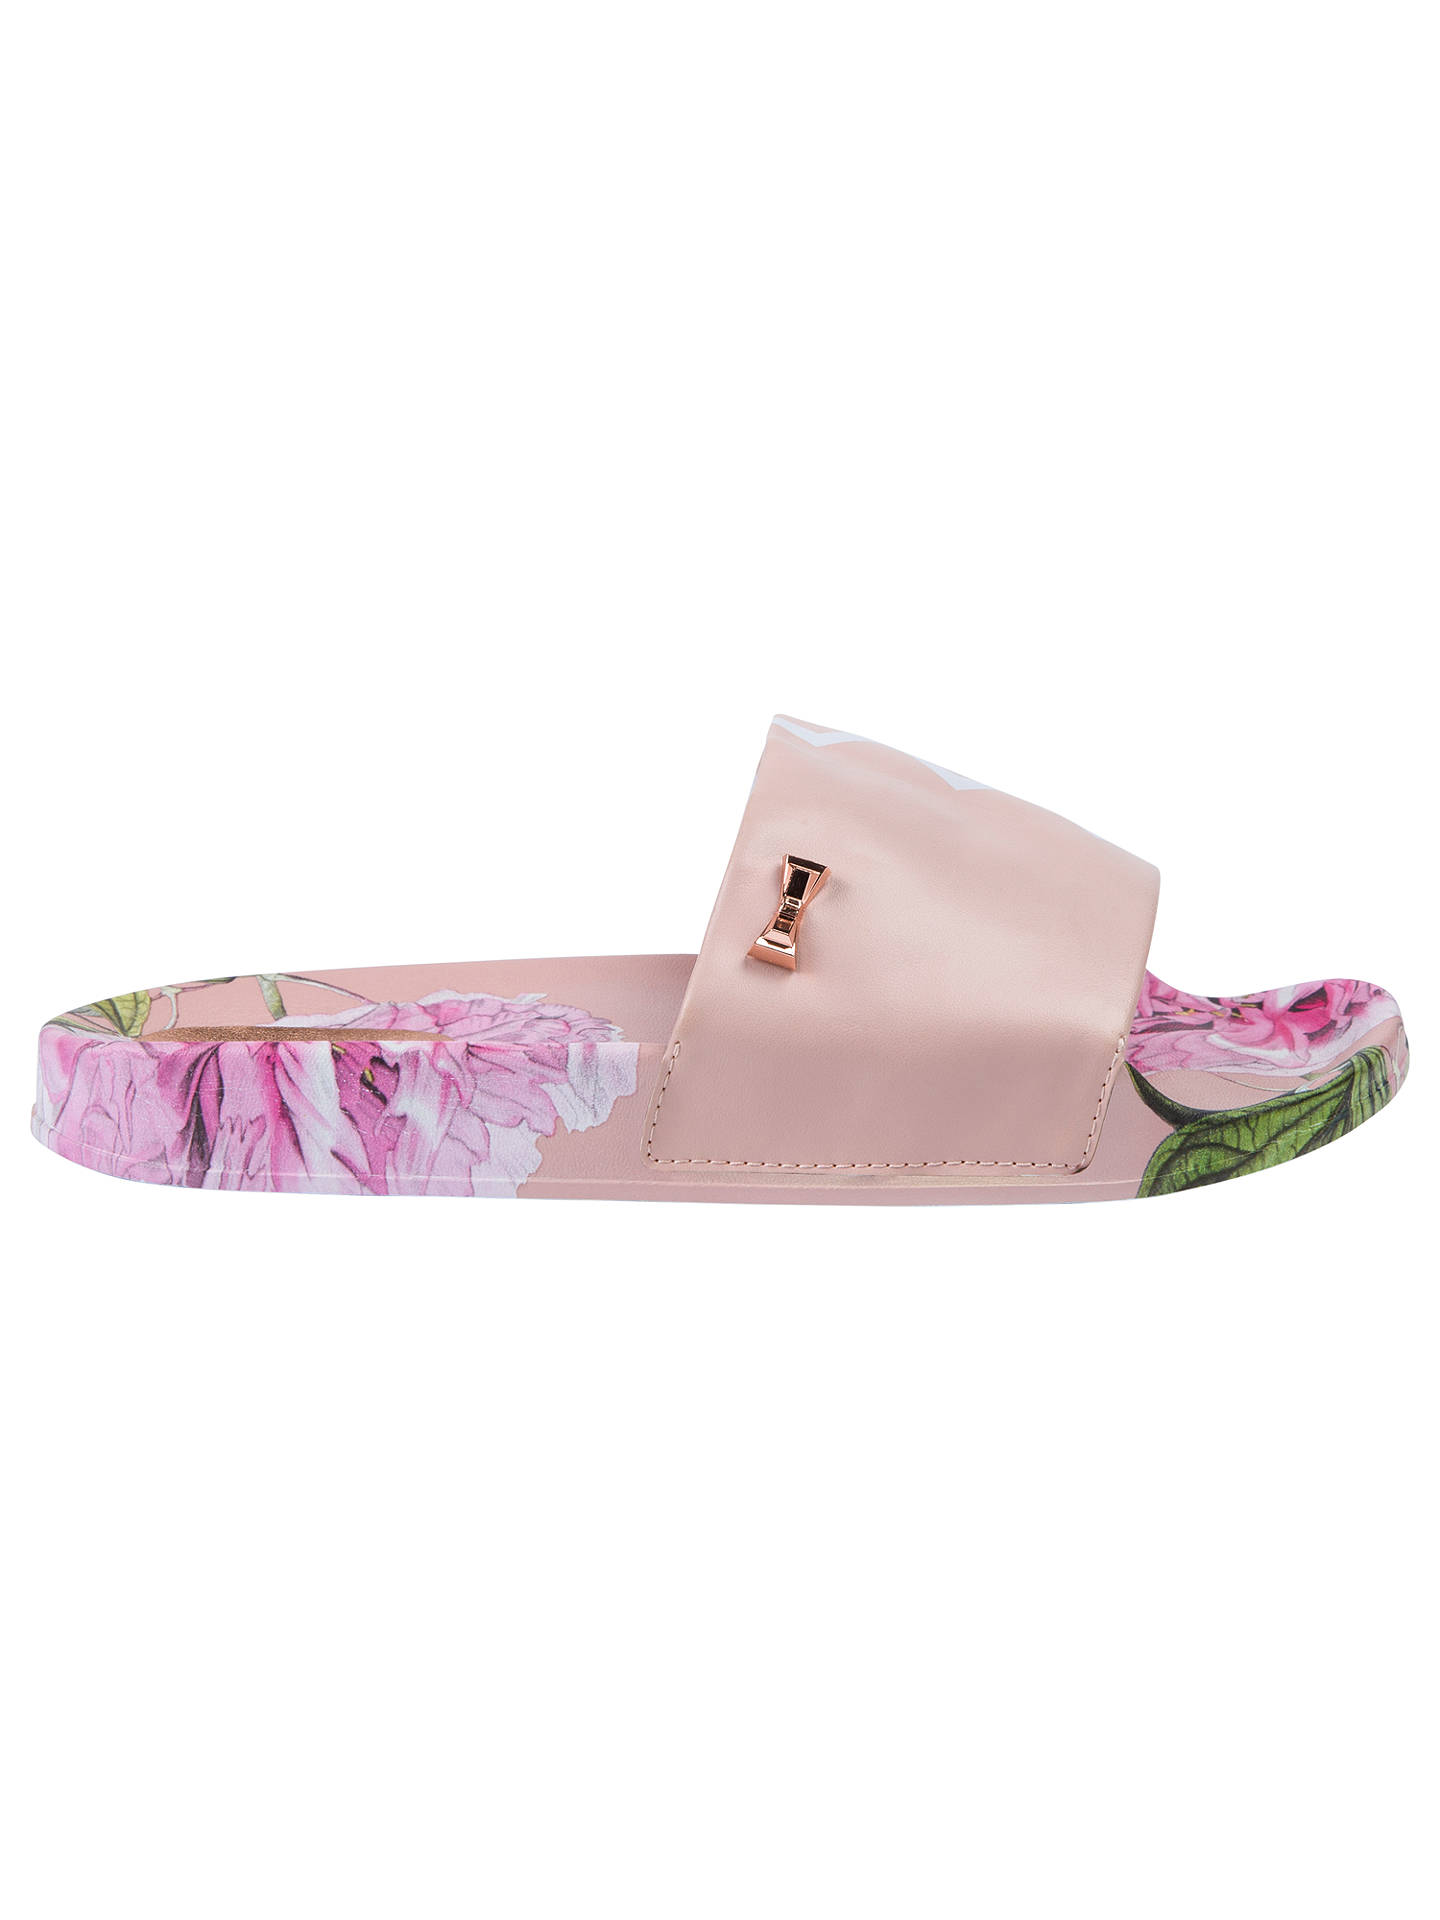 bfd491527f6cfa ... Buy Ted Baker Aveline Gardens Slider Sandals